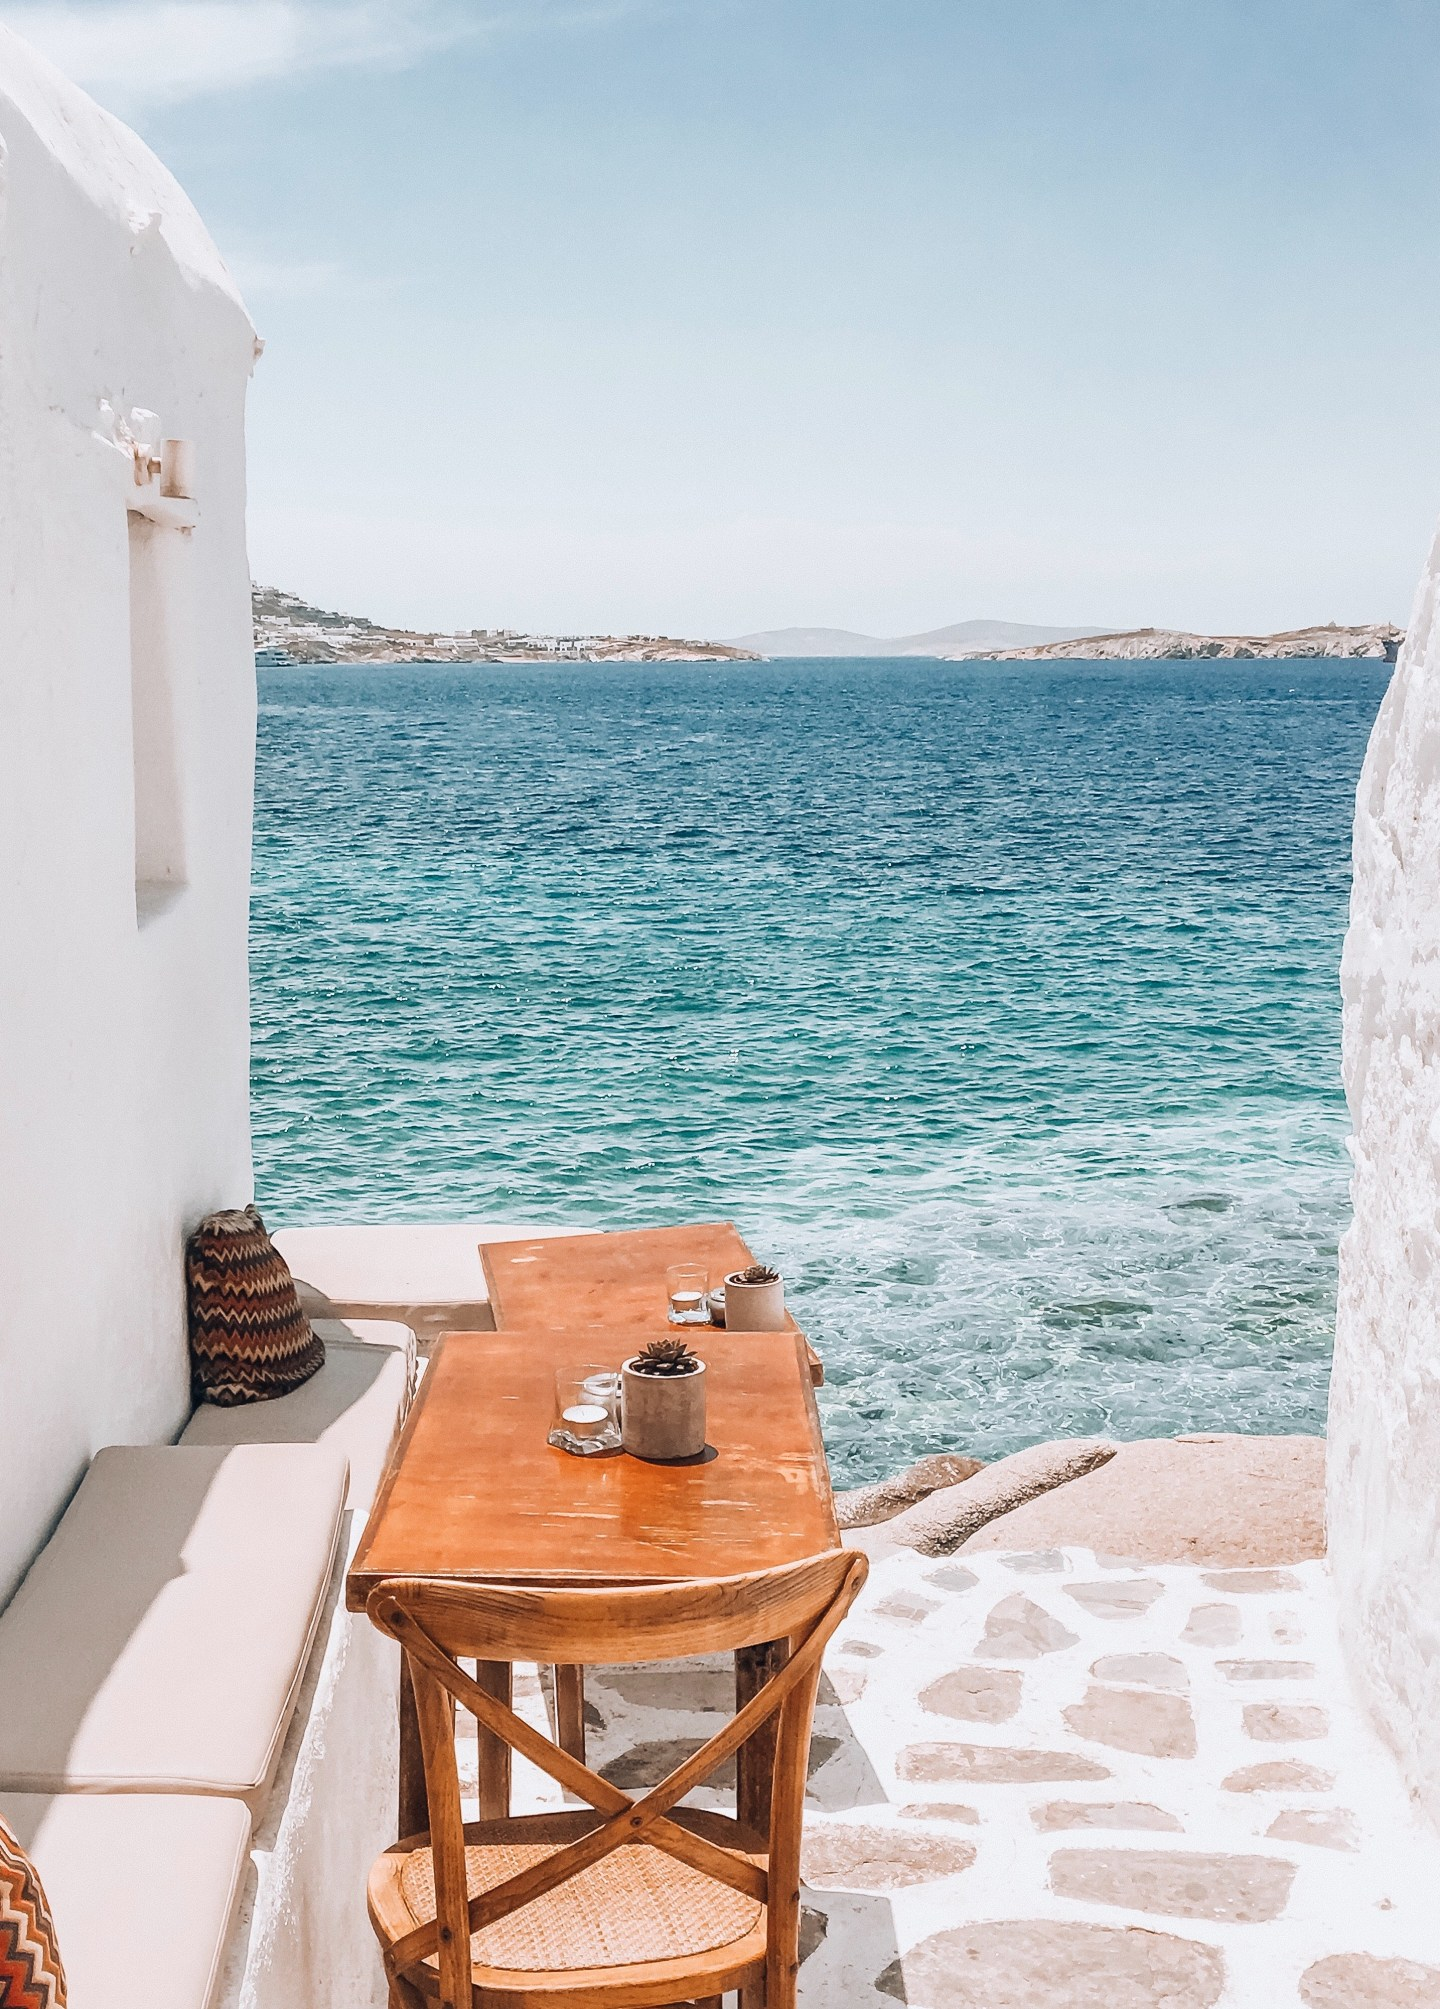 Travel Greece - things to do